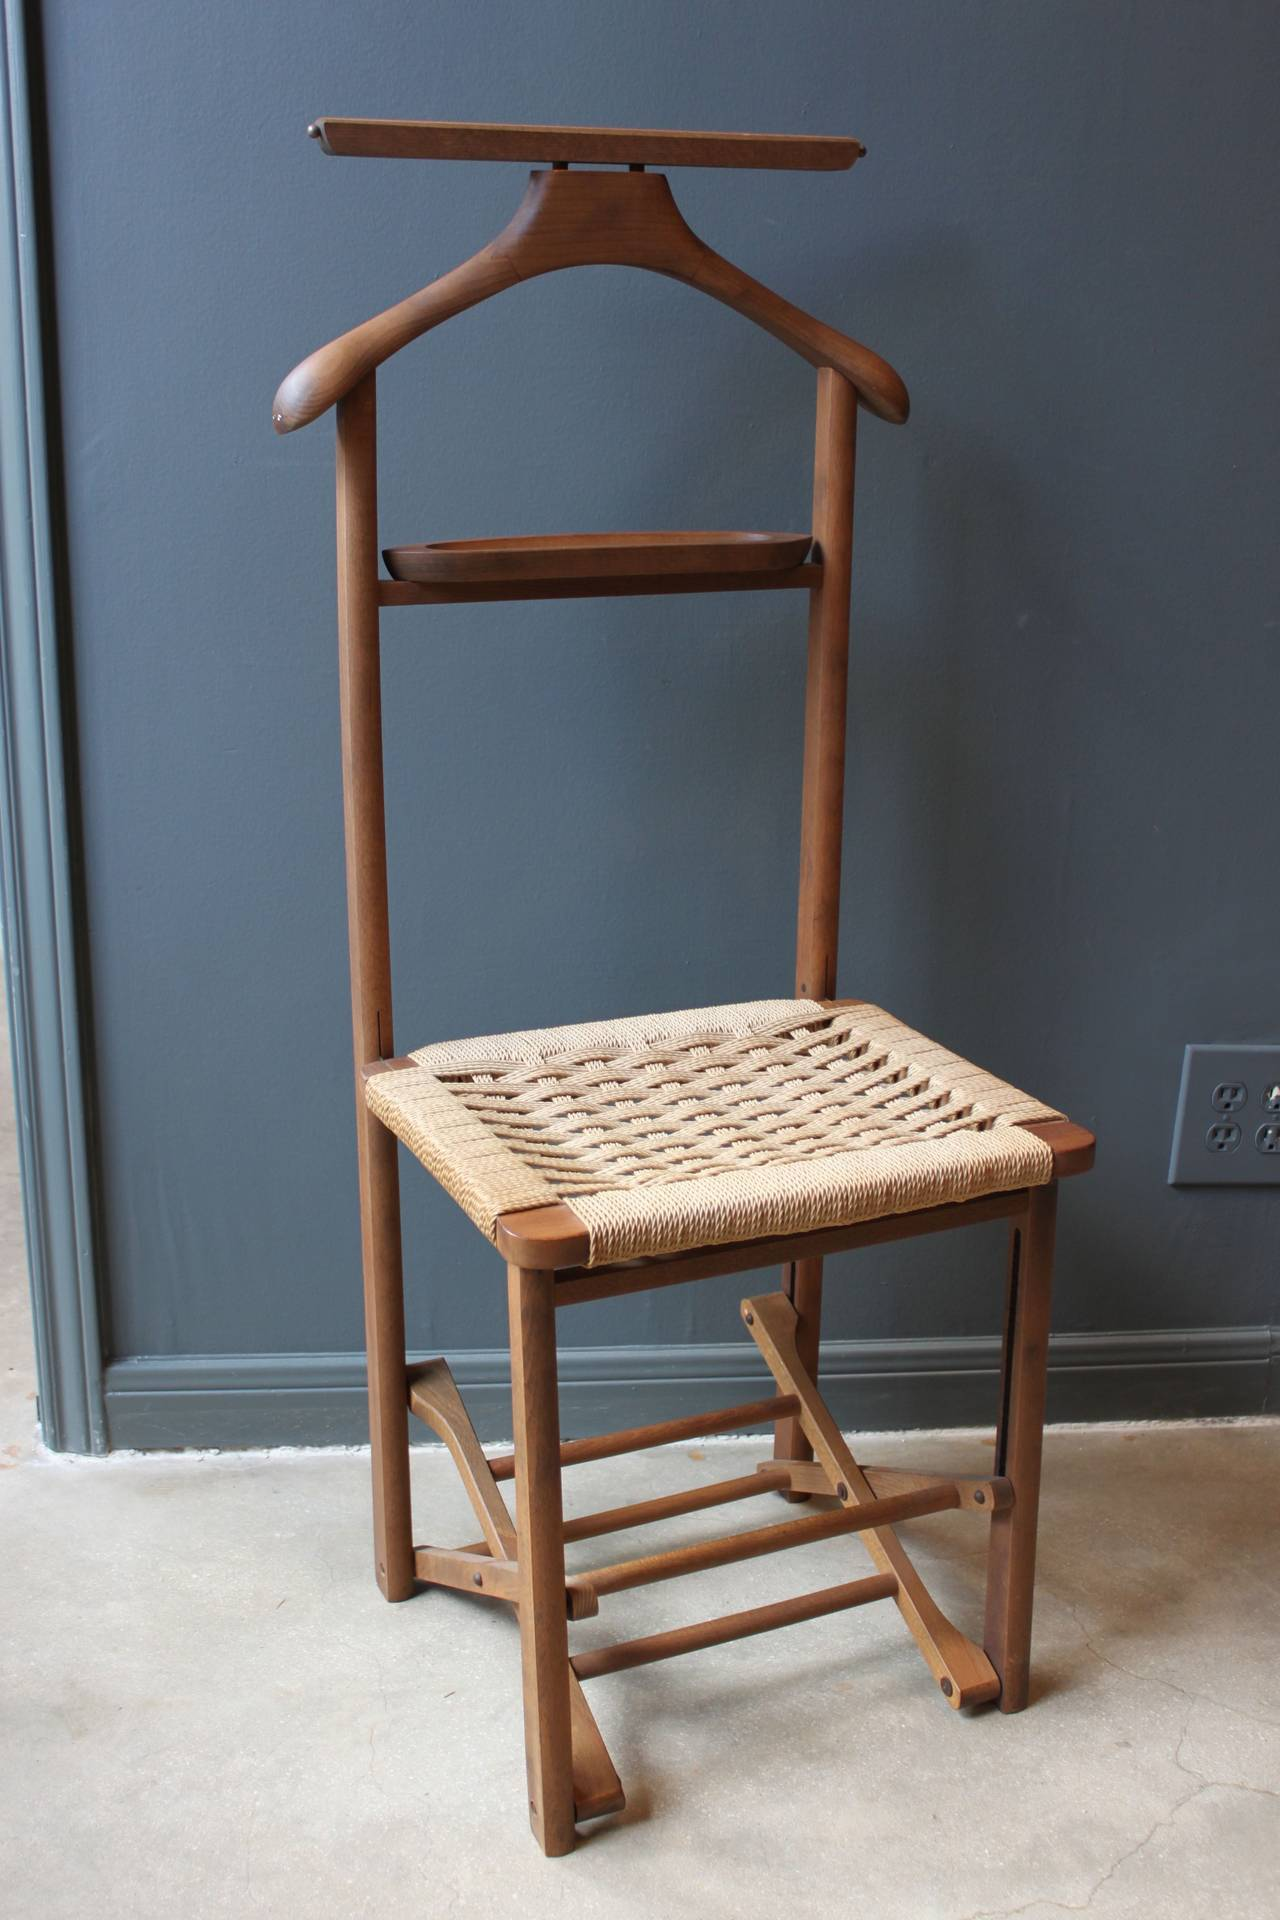 Antique Wooden Chair Vintage Wood Valet Folding Chair With Woven Caned Seat